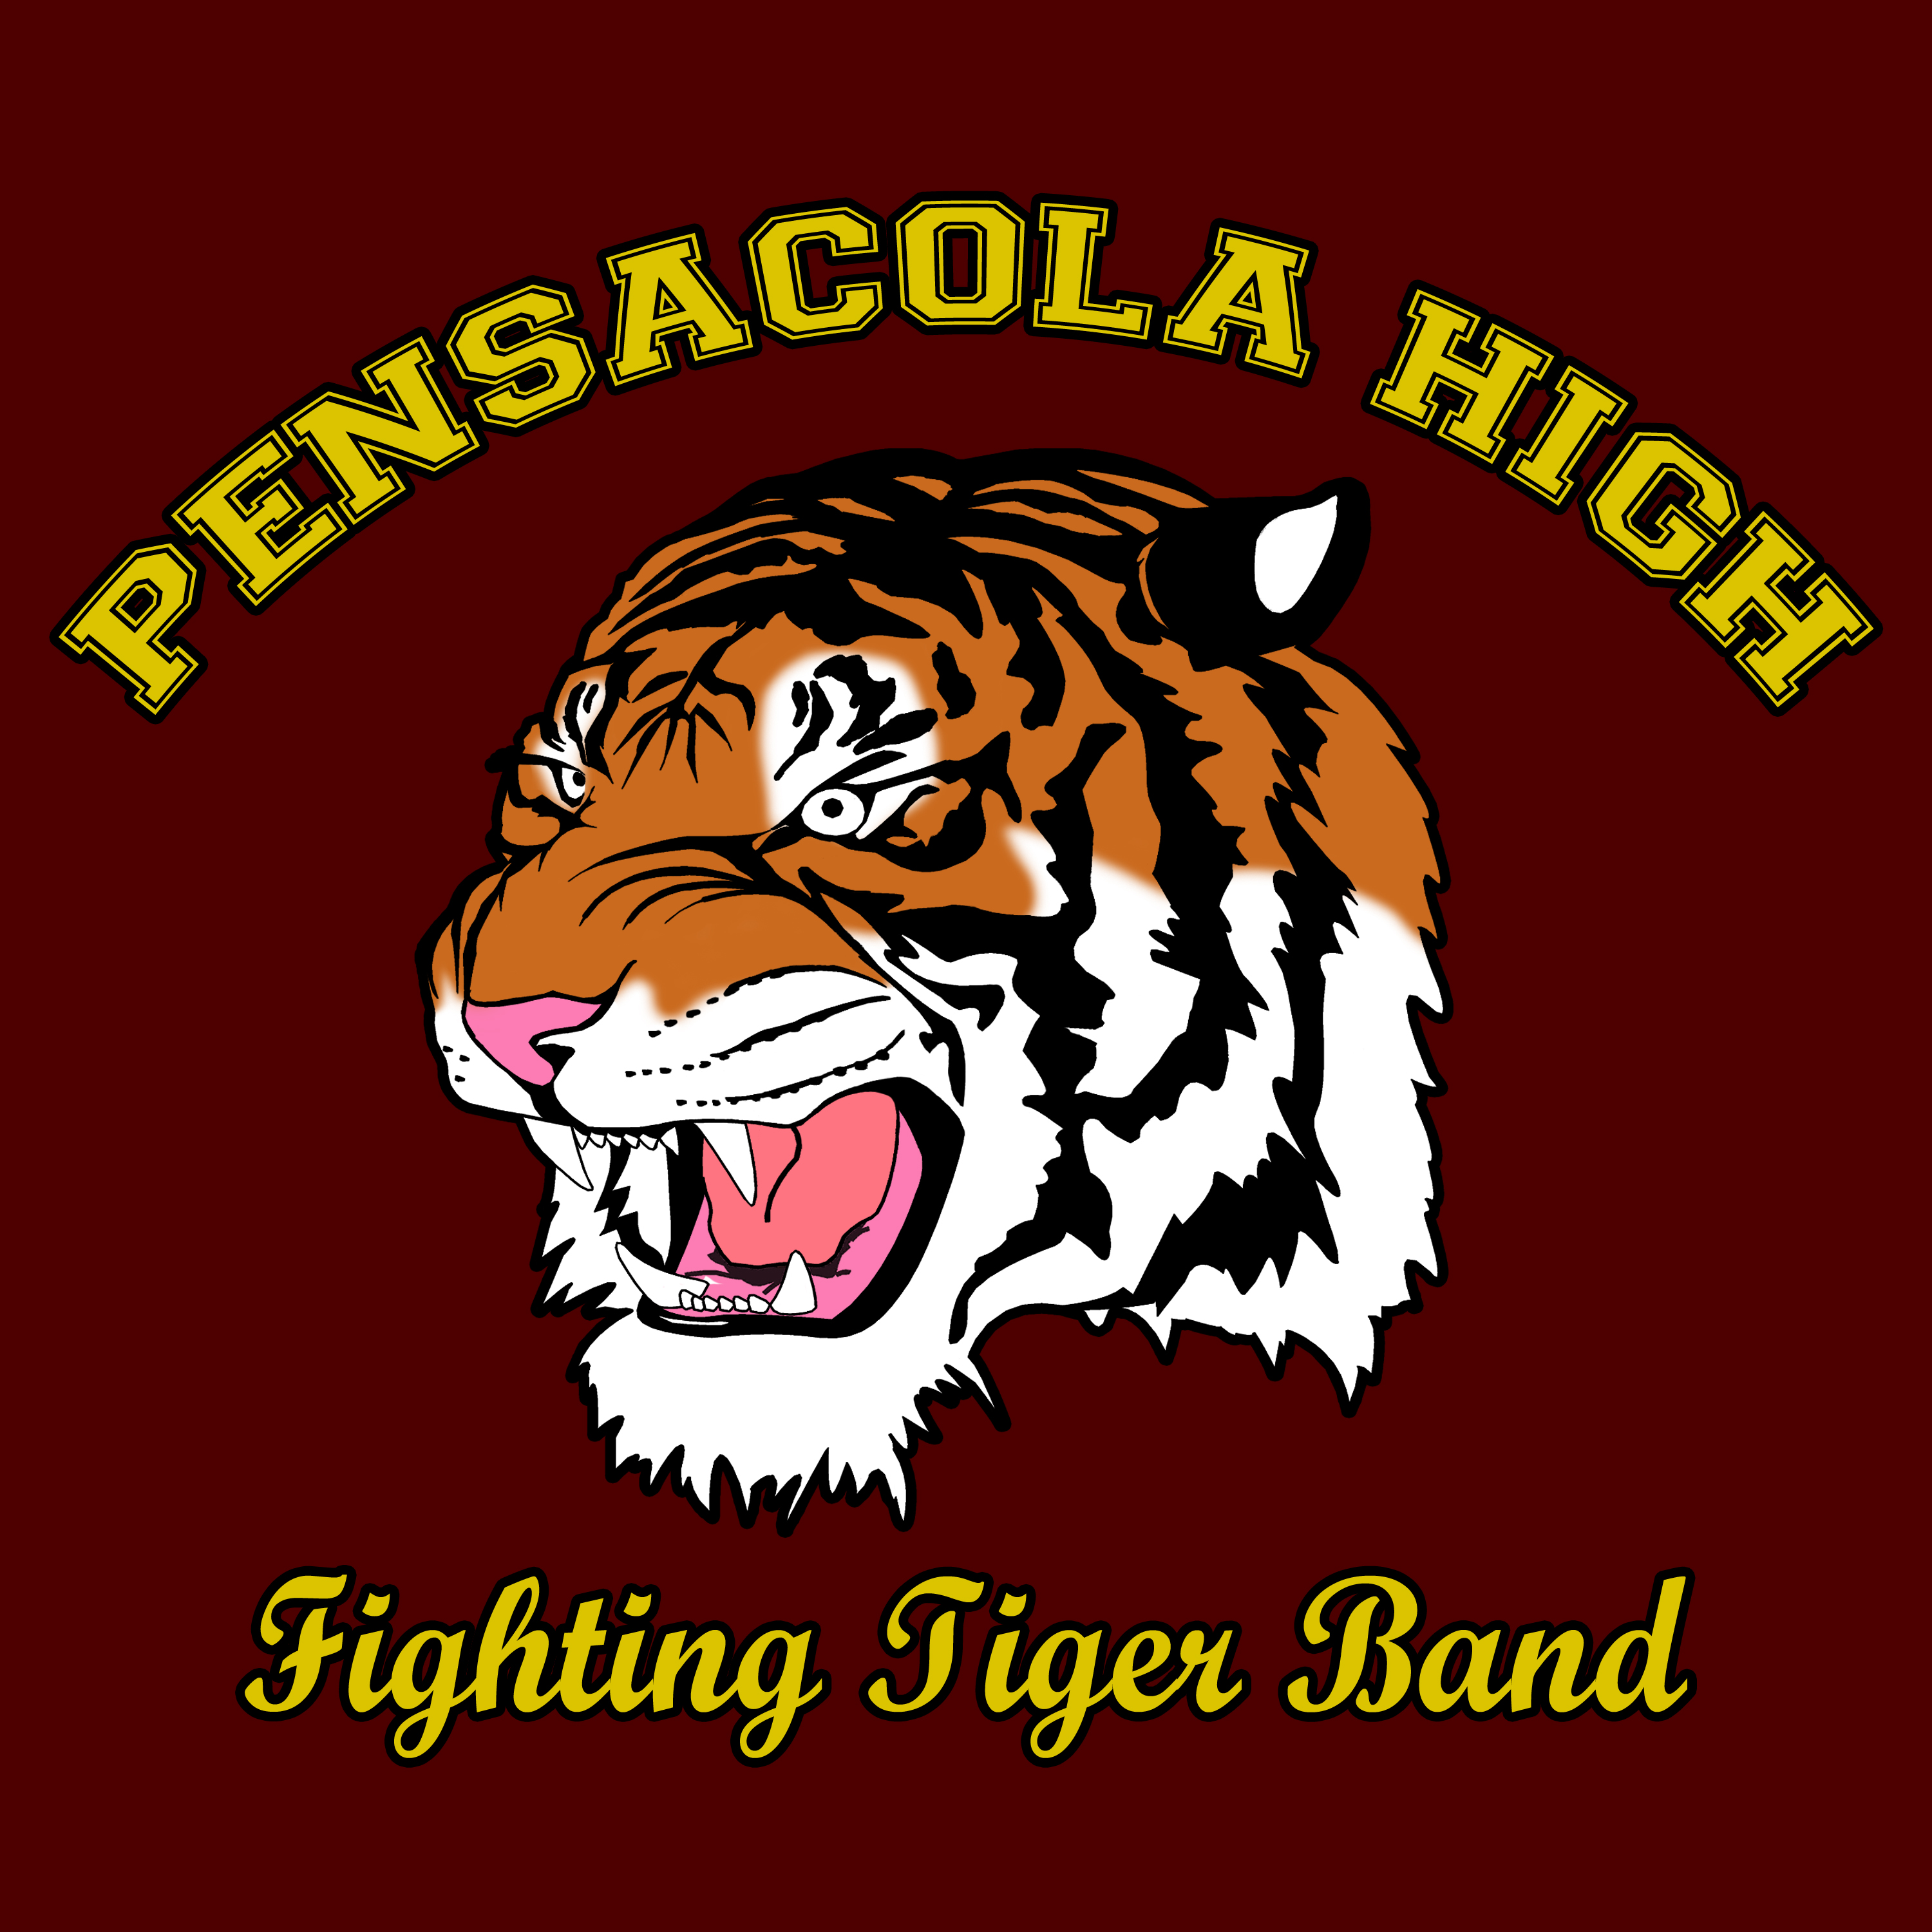 Pensacola Fighting Tiger Marching Band